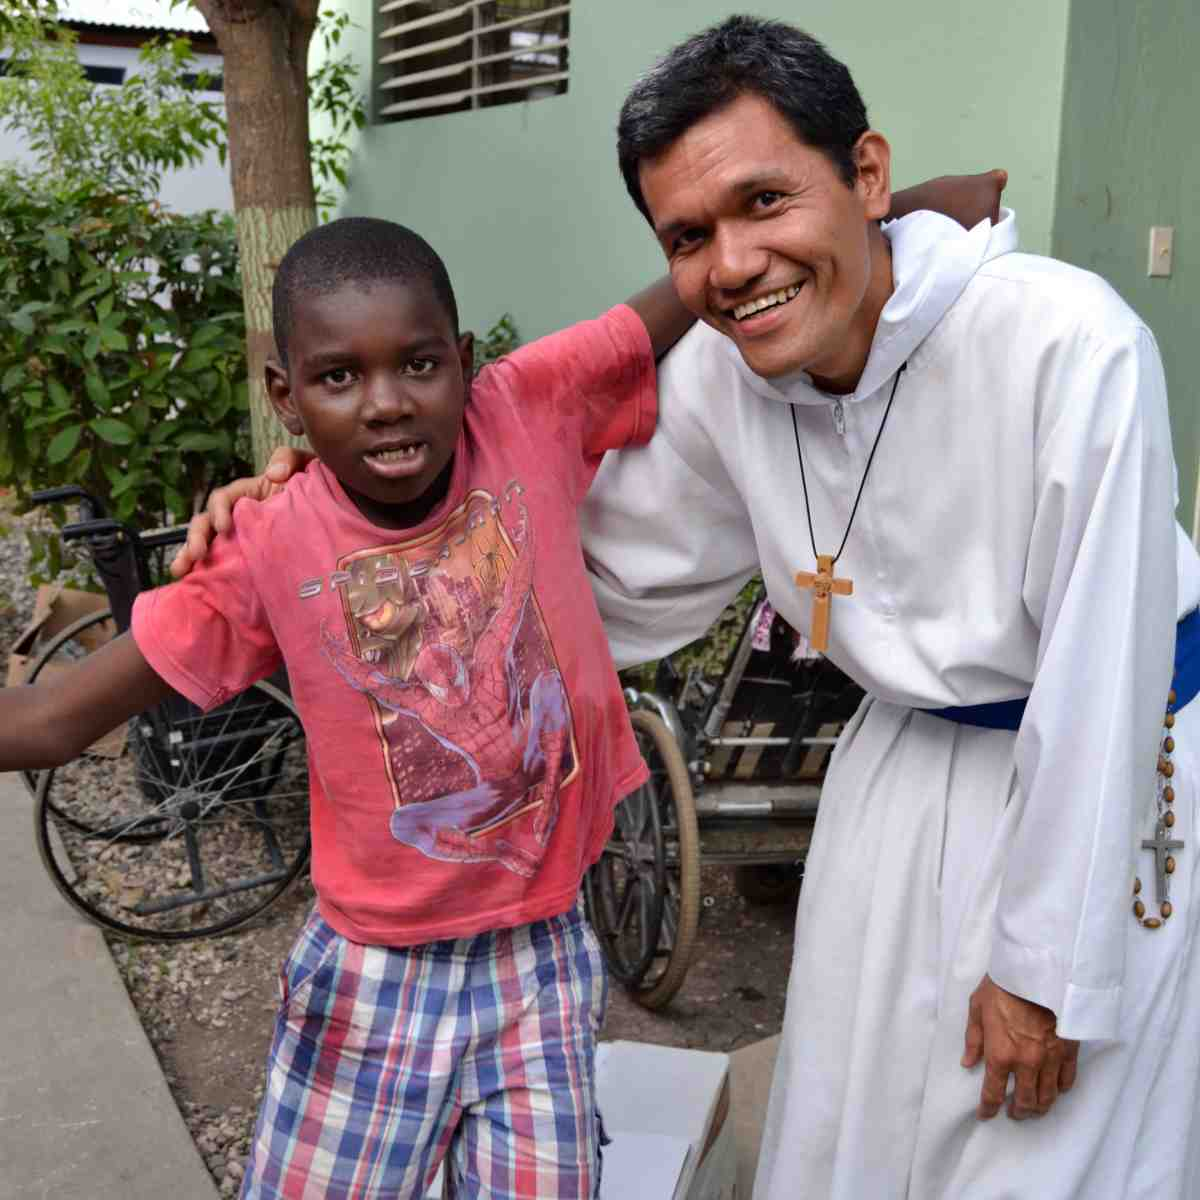 Catholic missionary spending time with resident of care home